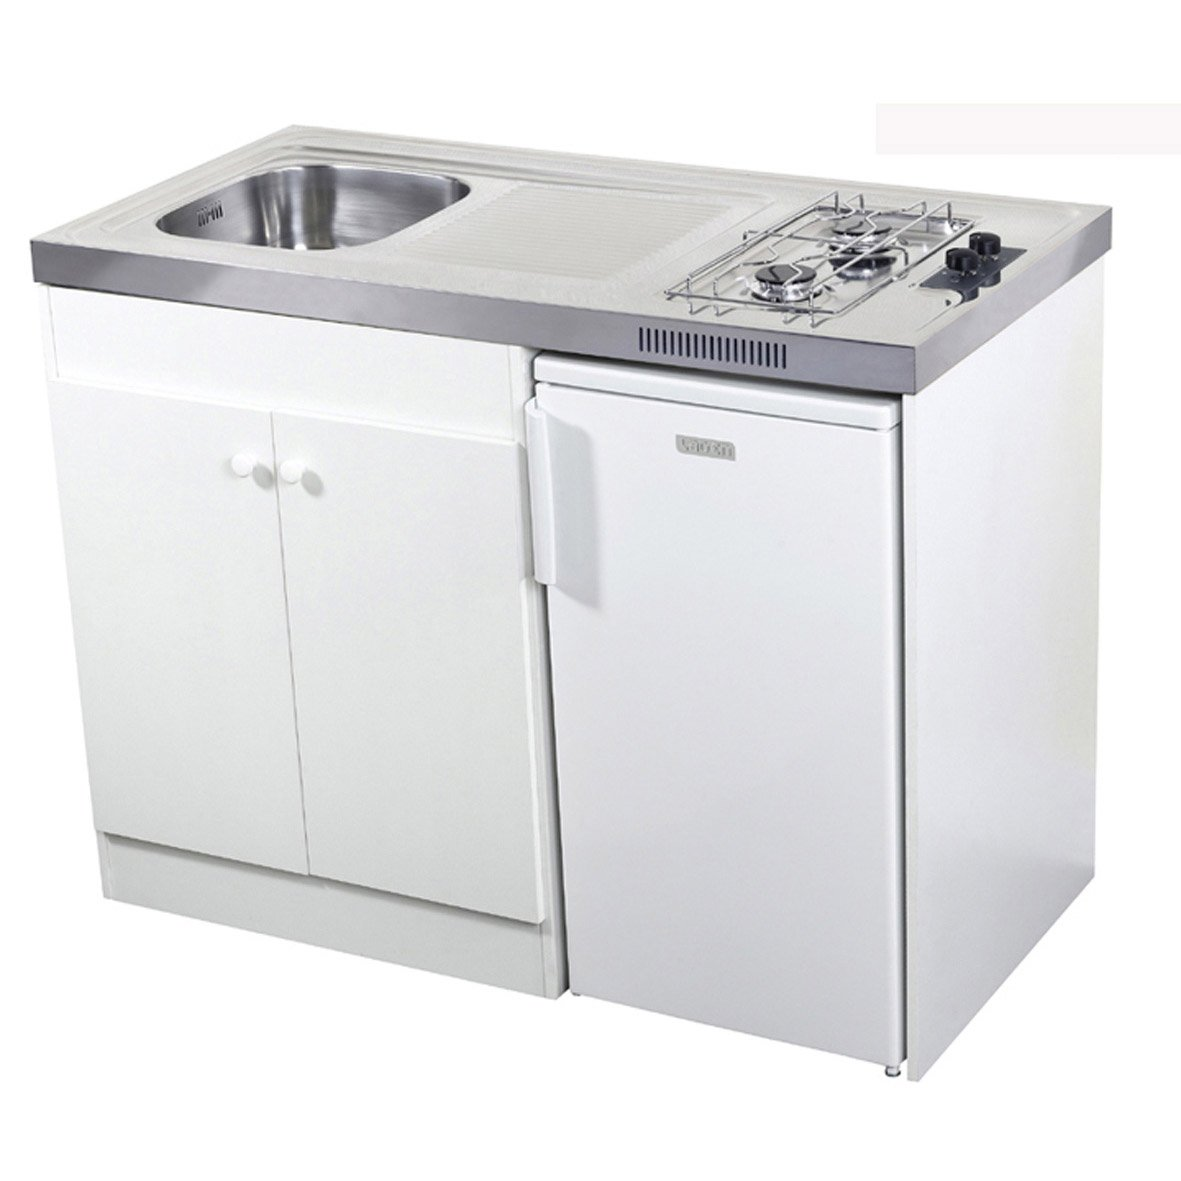 Kitchenette Gaz Blanc Spring Kitchenette Leroy Merlin